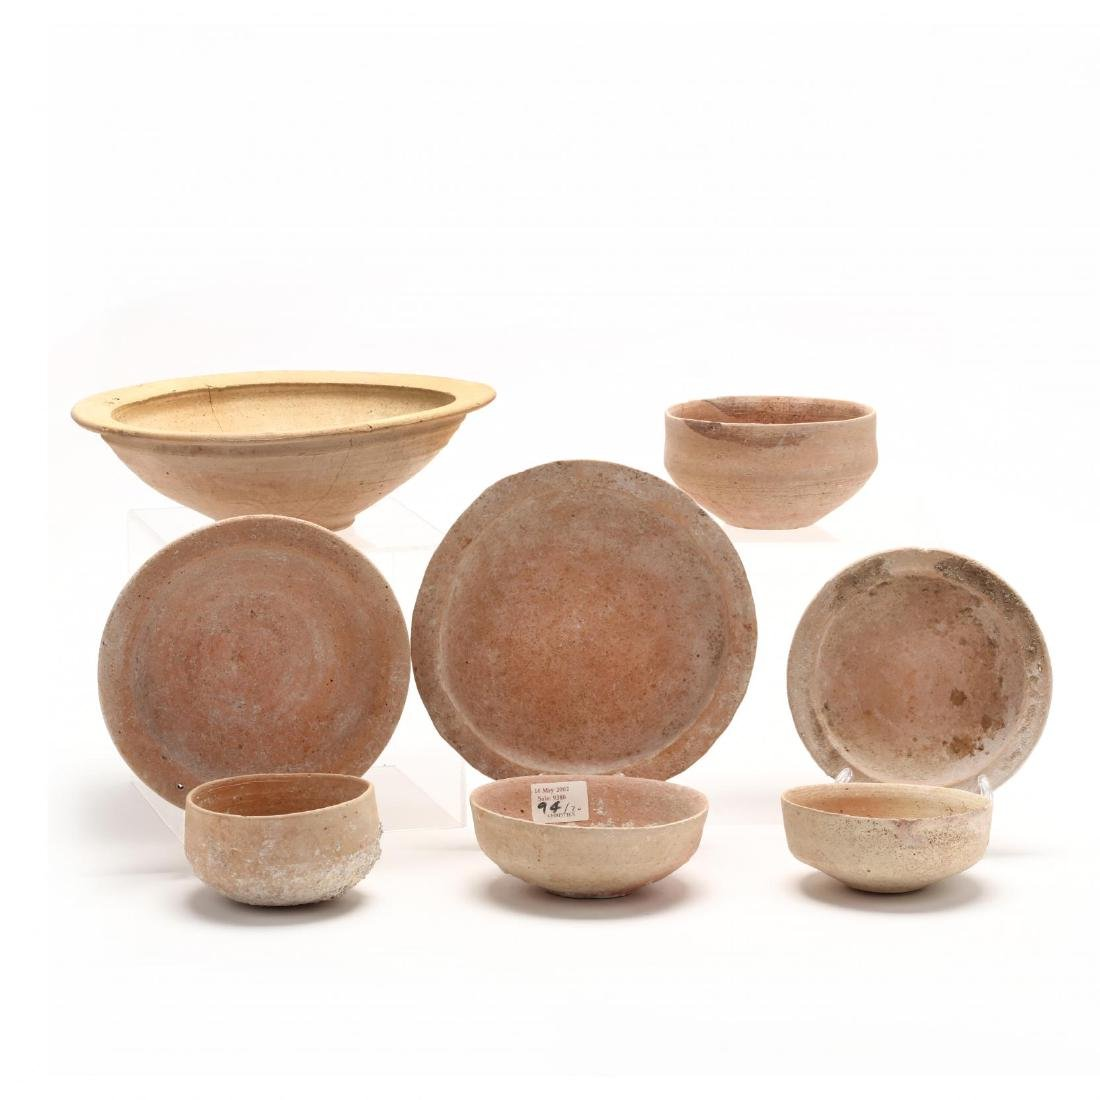 Eight Plain Cypriot Hellenistic Bowls